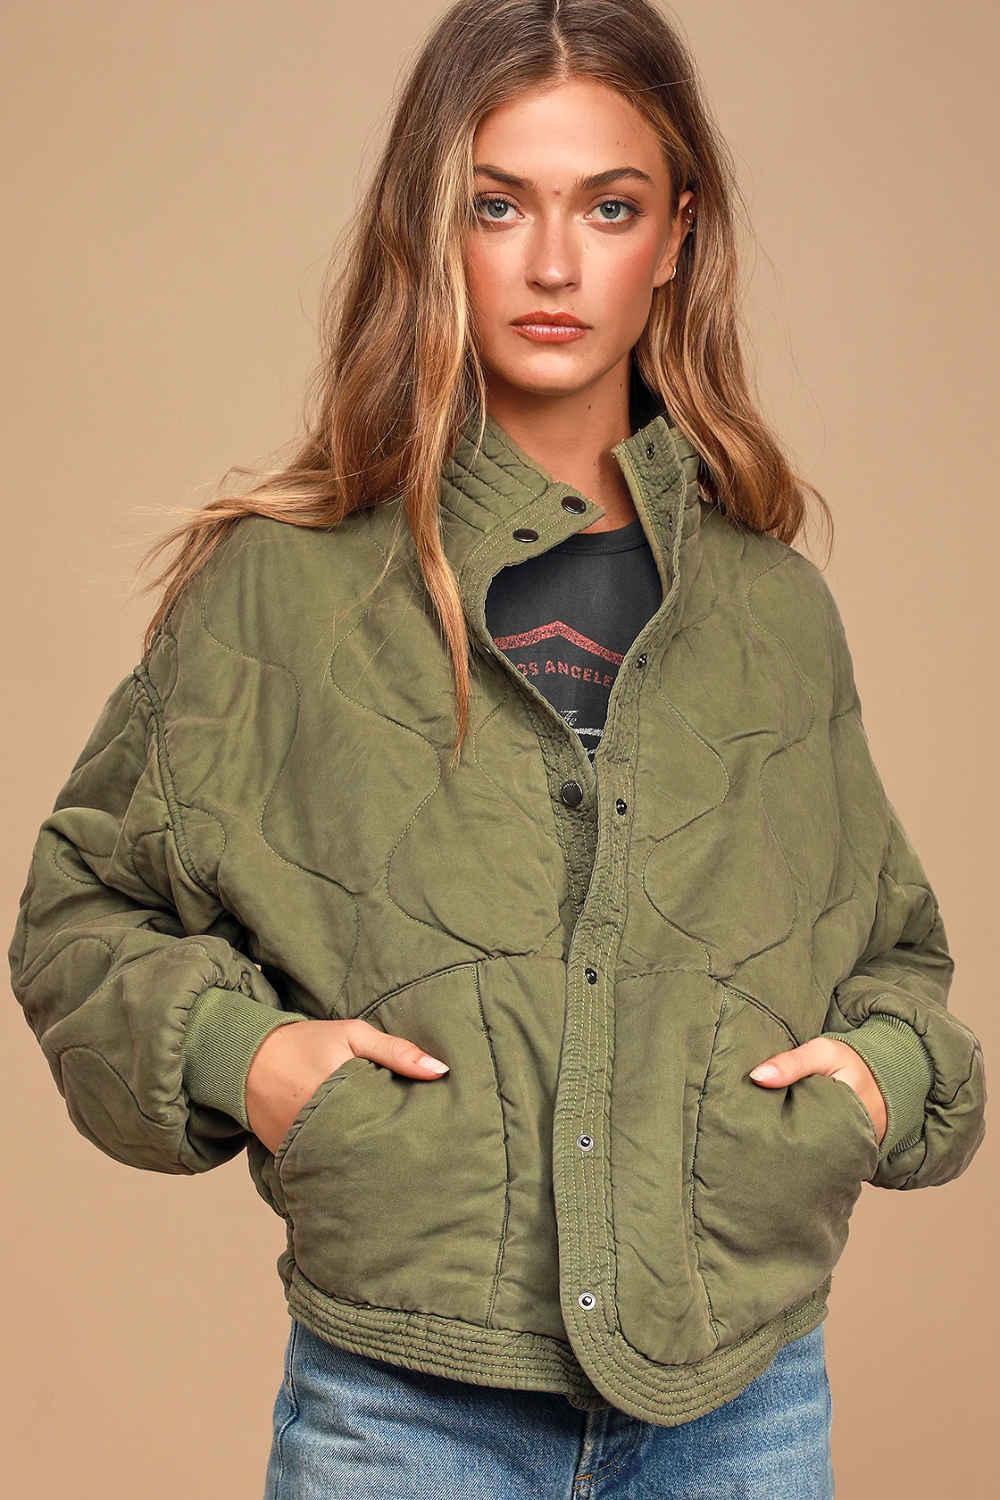 Roger That Olive Green Quilted Jacket In 2021 Quilted Jacket Womens Fashion Jackets Olive Green Puffer Jacket Outfit [ 1500 x 1000 Pixel ]